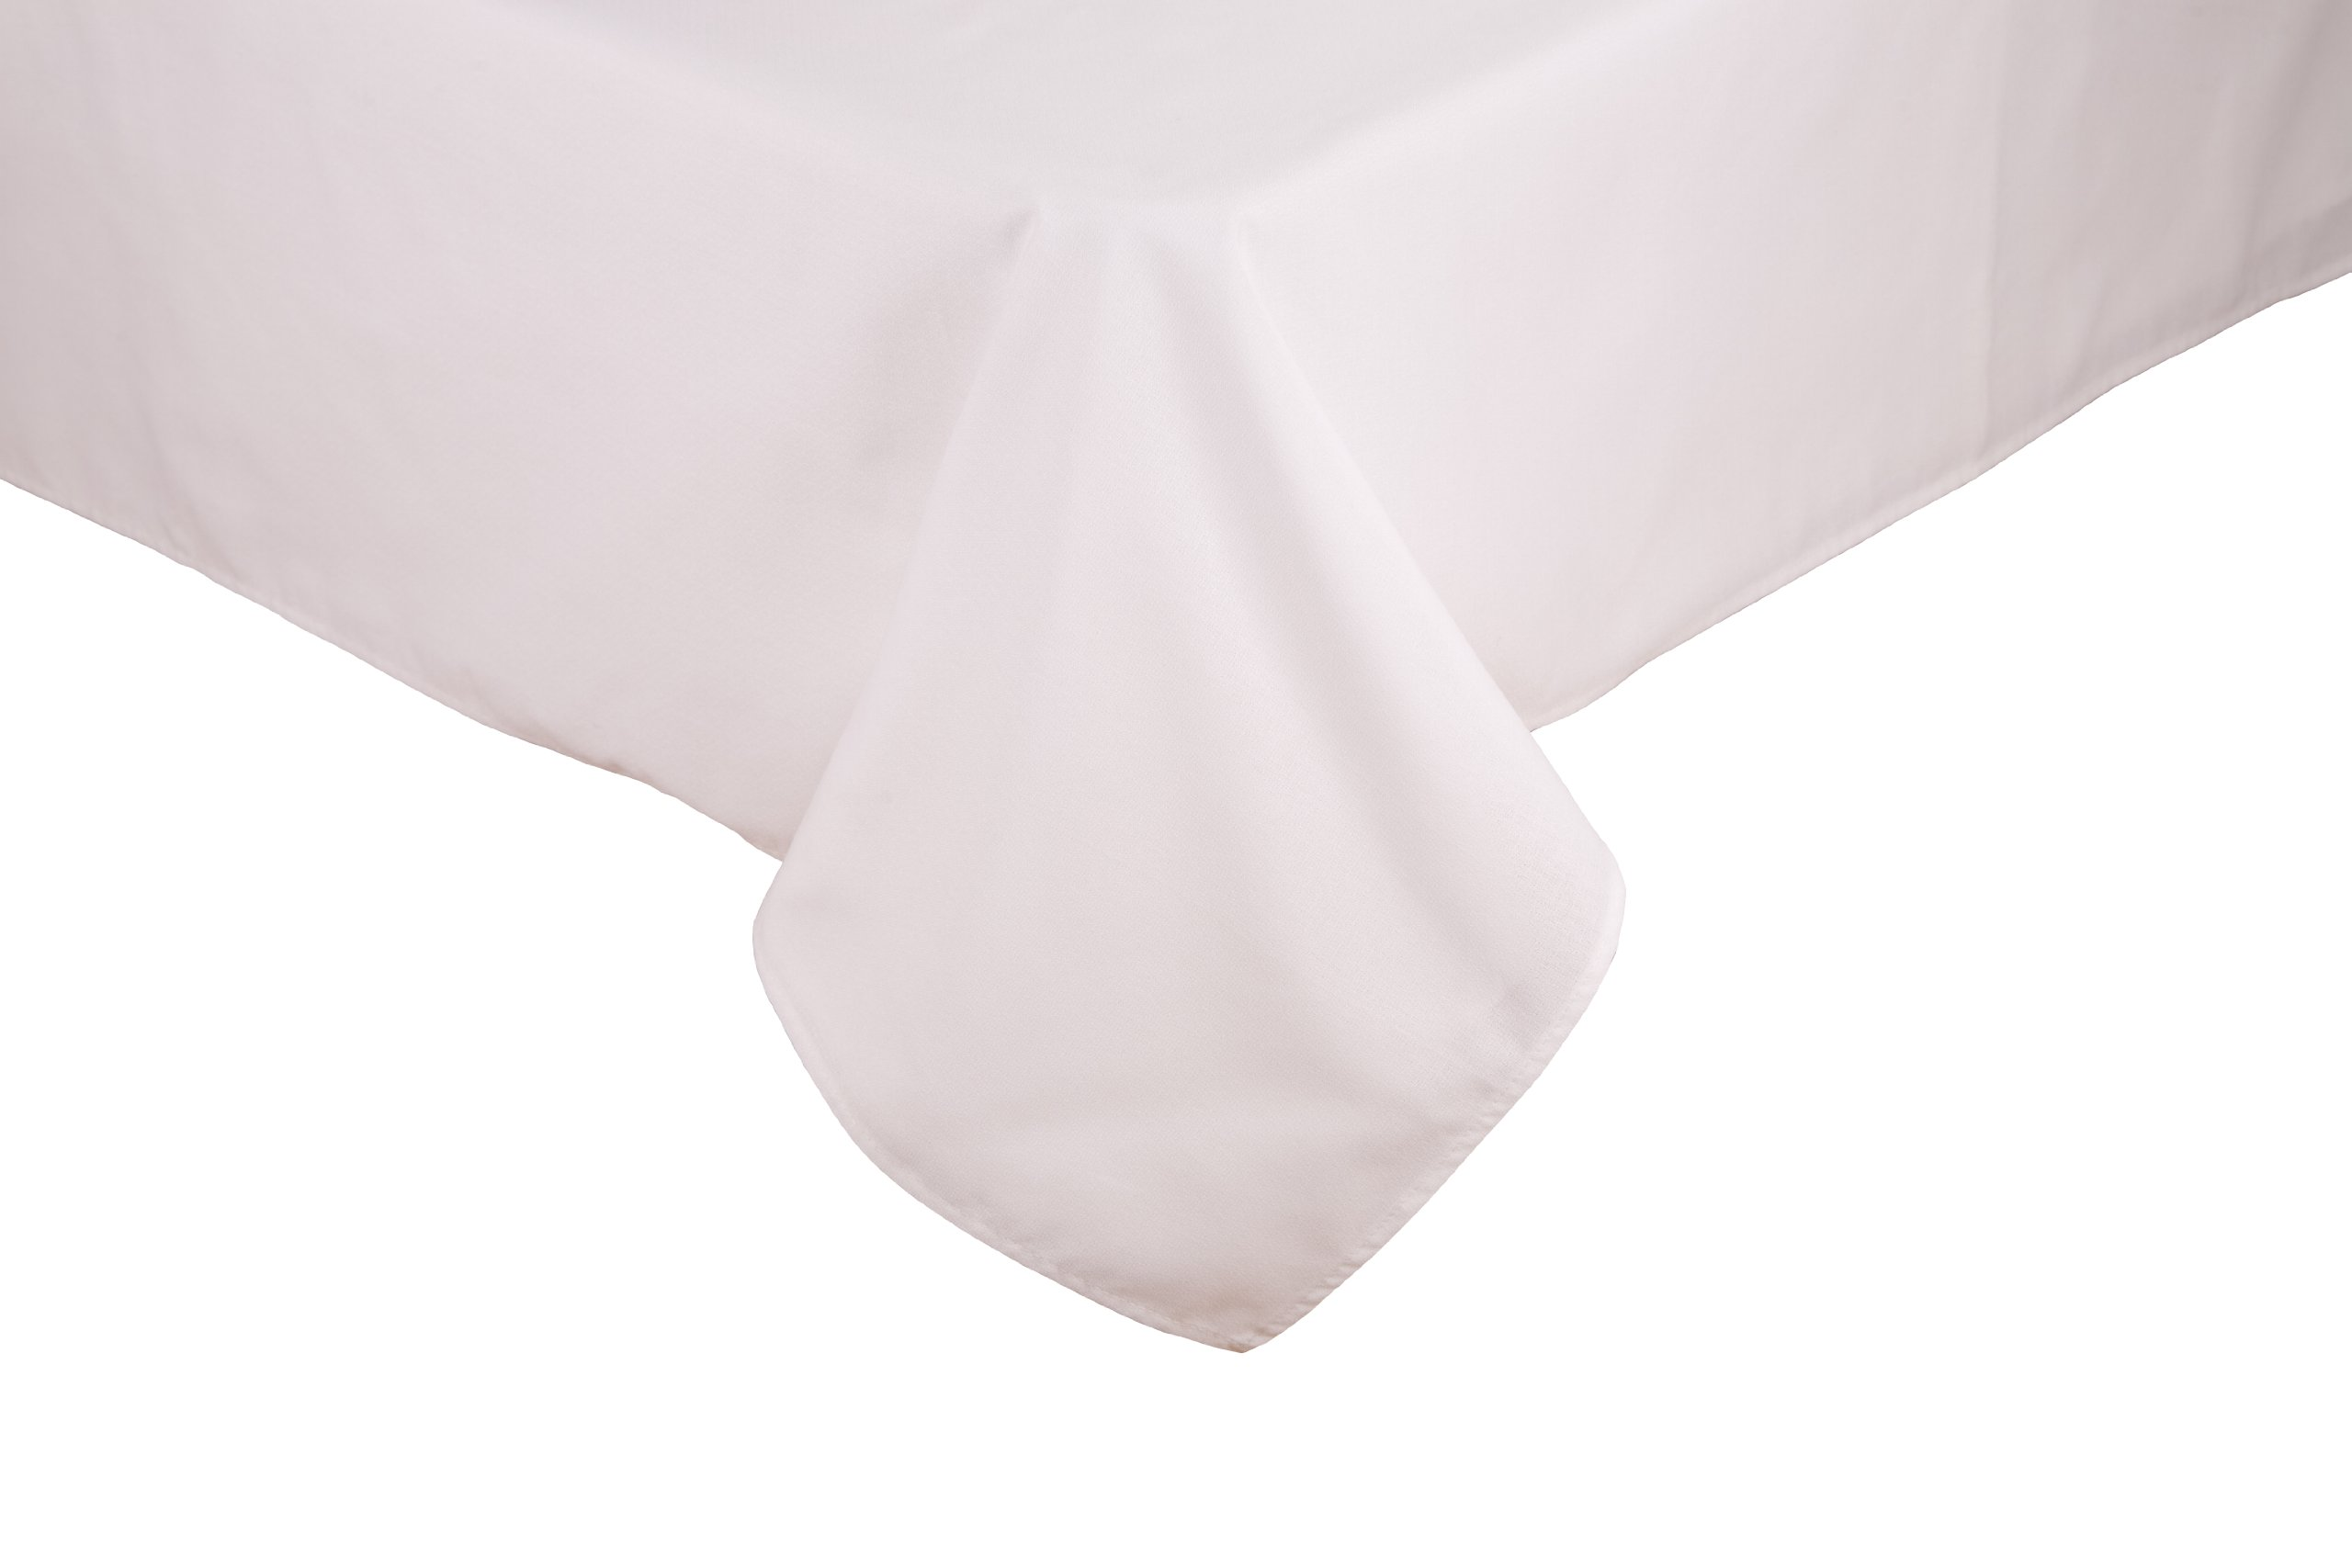 "Riegel Premier 100-Percent Polyester 62-Inch by 62-Inch Tablecloth, White - 7.2 oz/sq yard;superior stain release; no picking, snagging, or linting Machine wash and tumble dry low; remove and fold promptly after drying 100% spun polyester 62"" x 62"" tablecloth - tablecloths, kitchen-dining-room-table-linens, kitchen-dining-room - 71YR0beZr8L -"